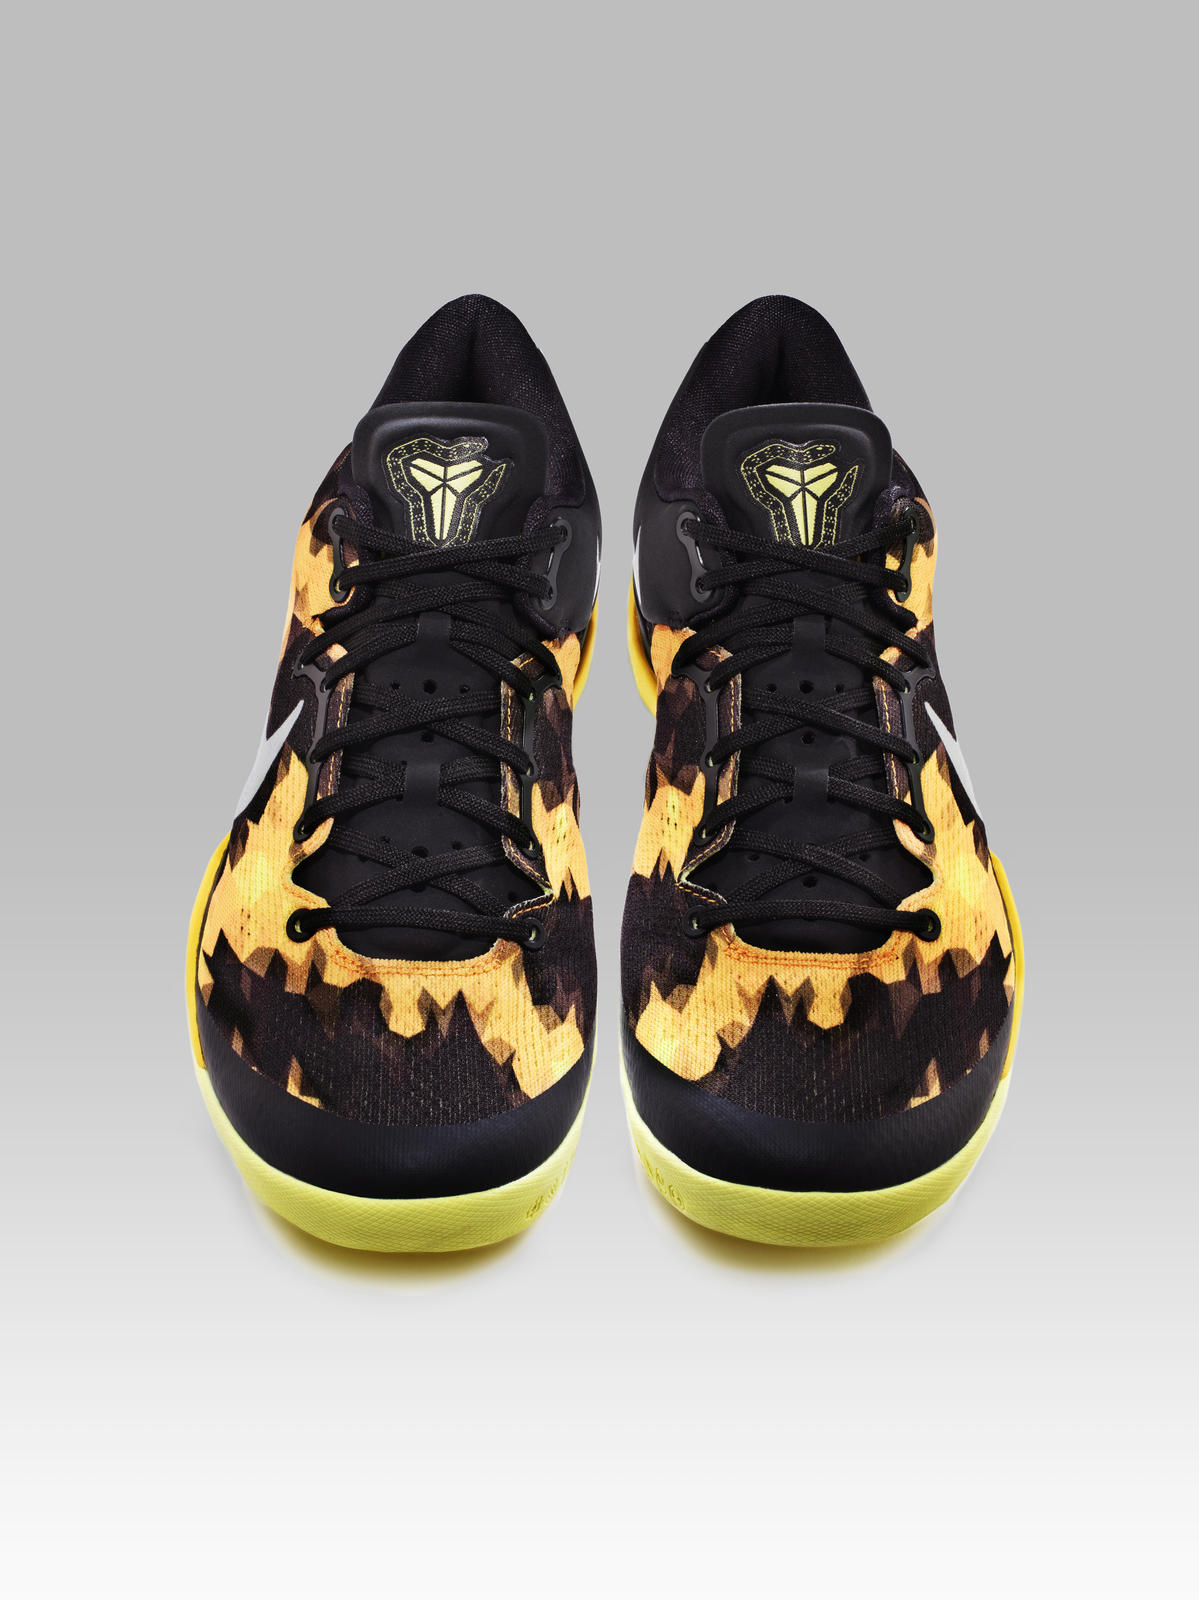 Kobe bryant 8 shoes